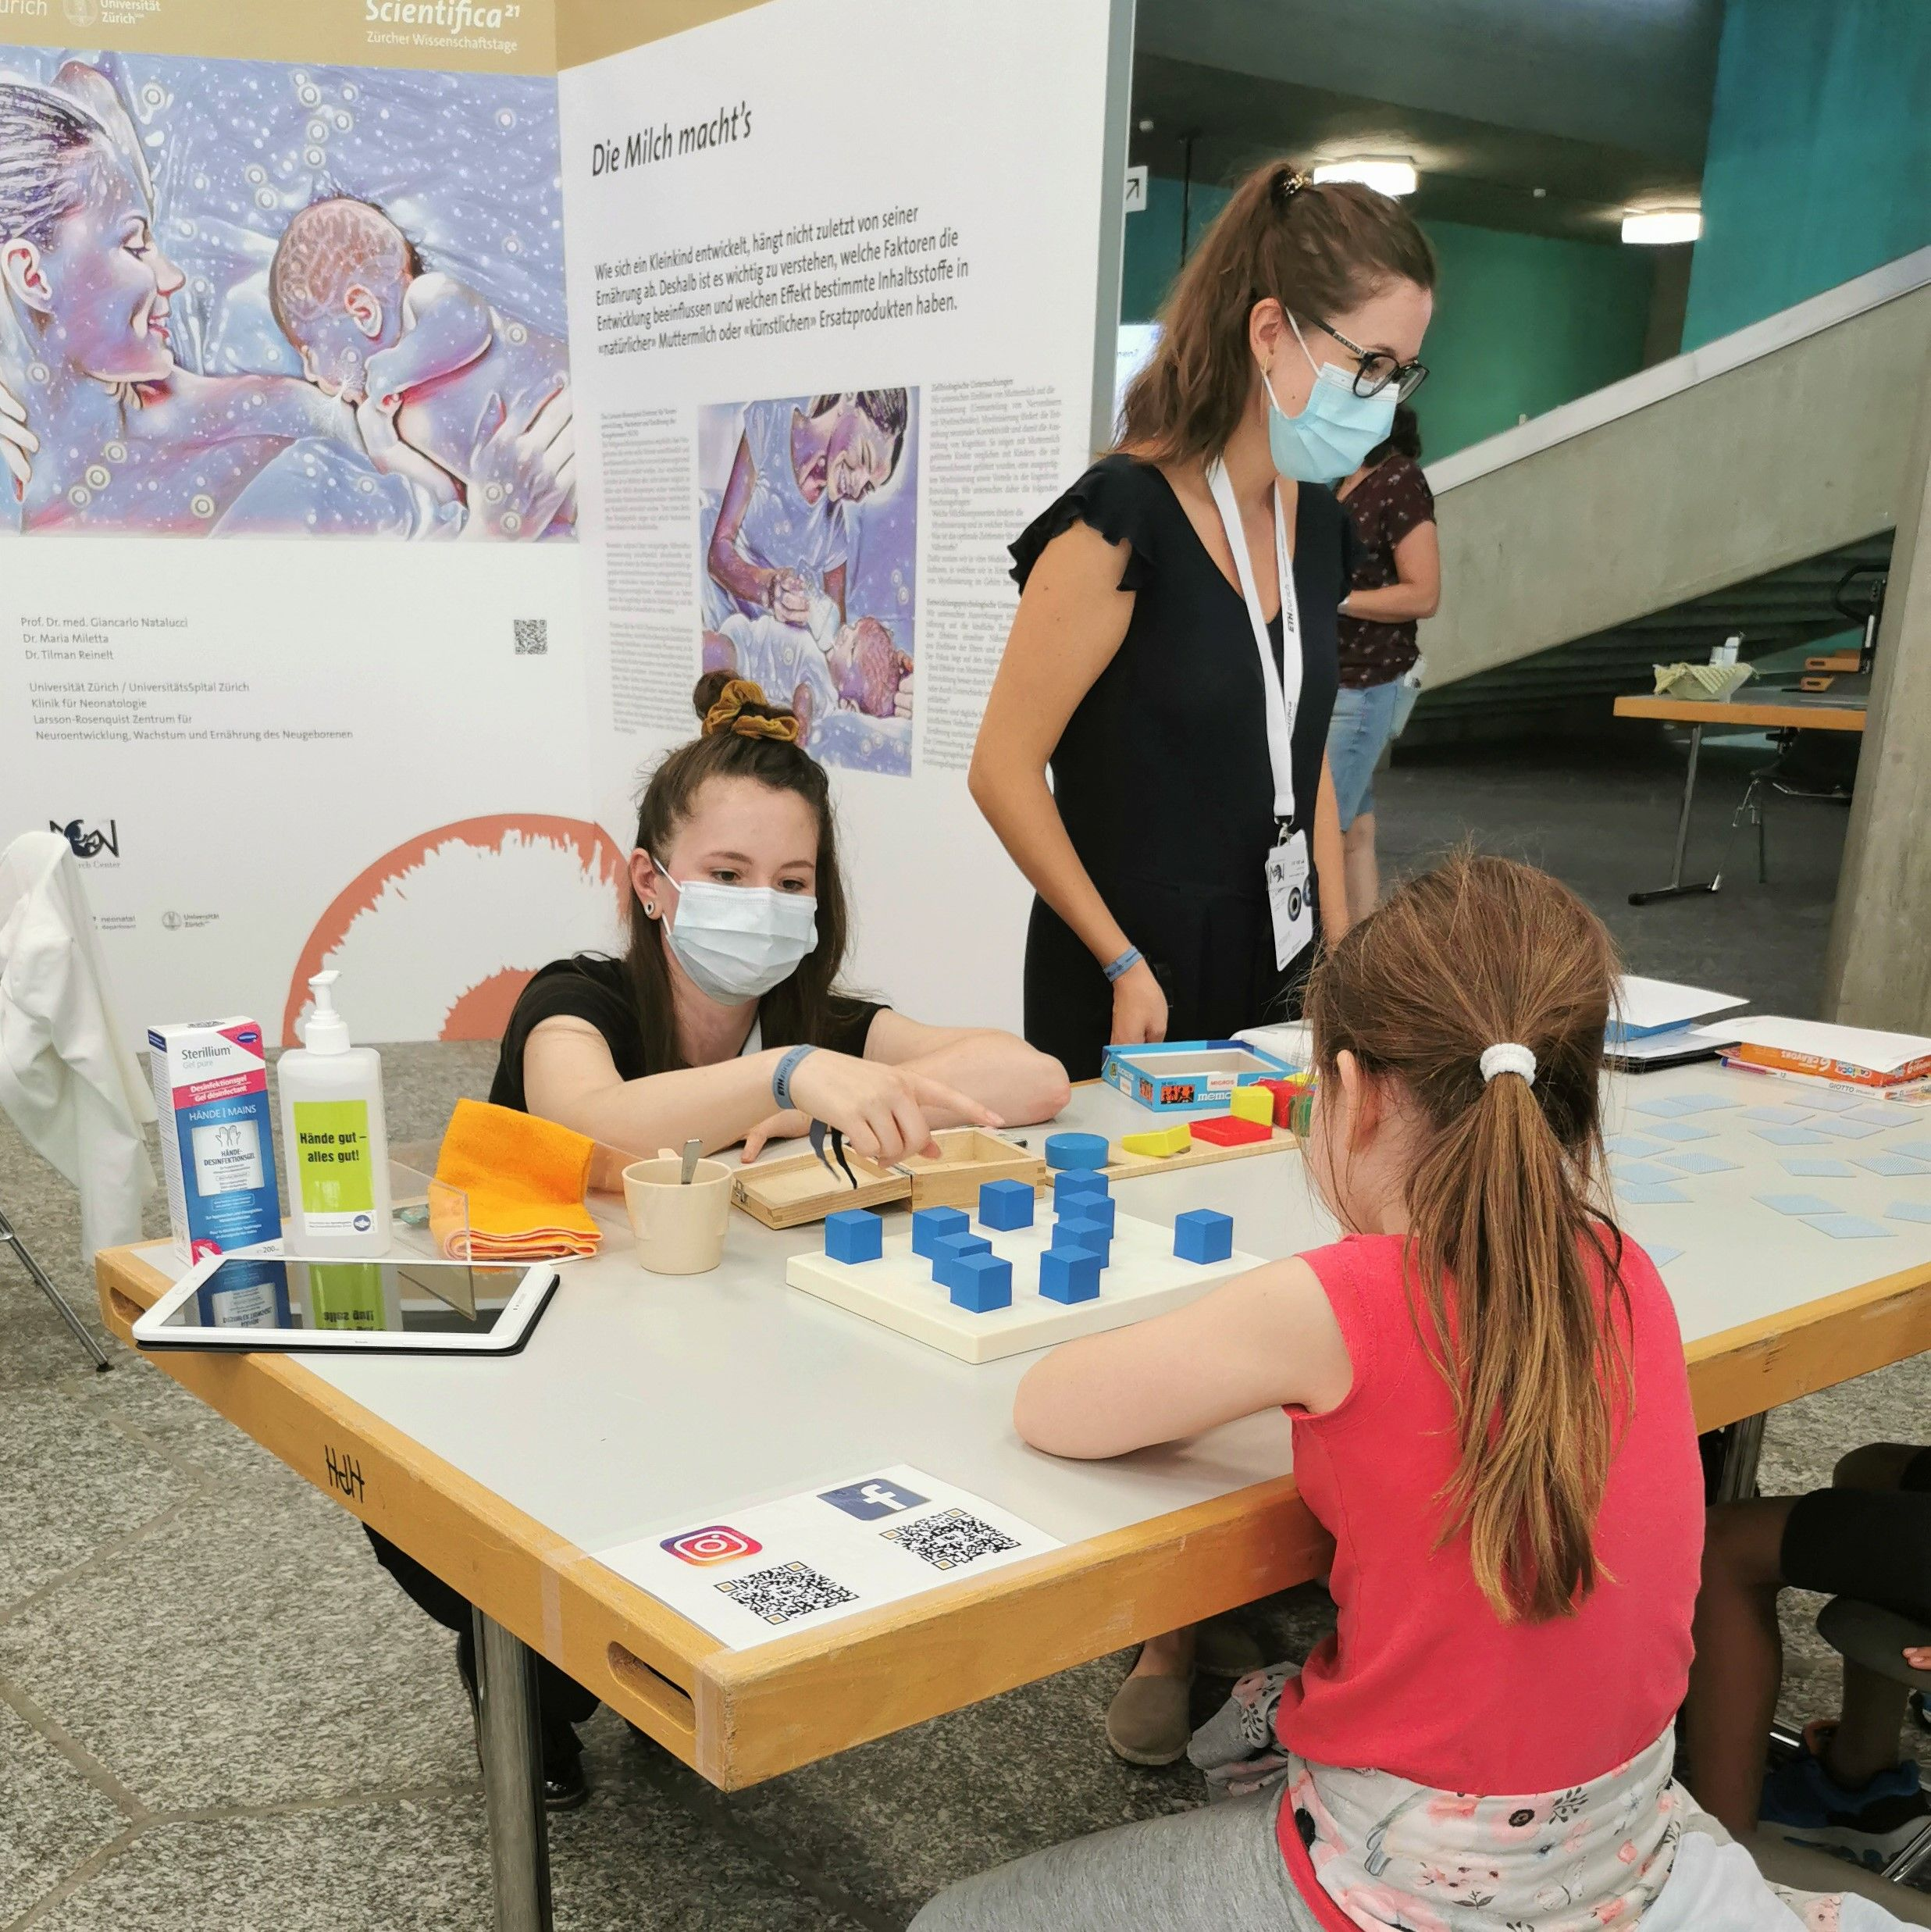 NGN Research Center Exhibition booth at Scientifica with interactive tests for children and adults